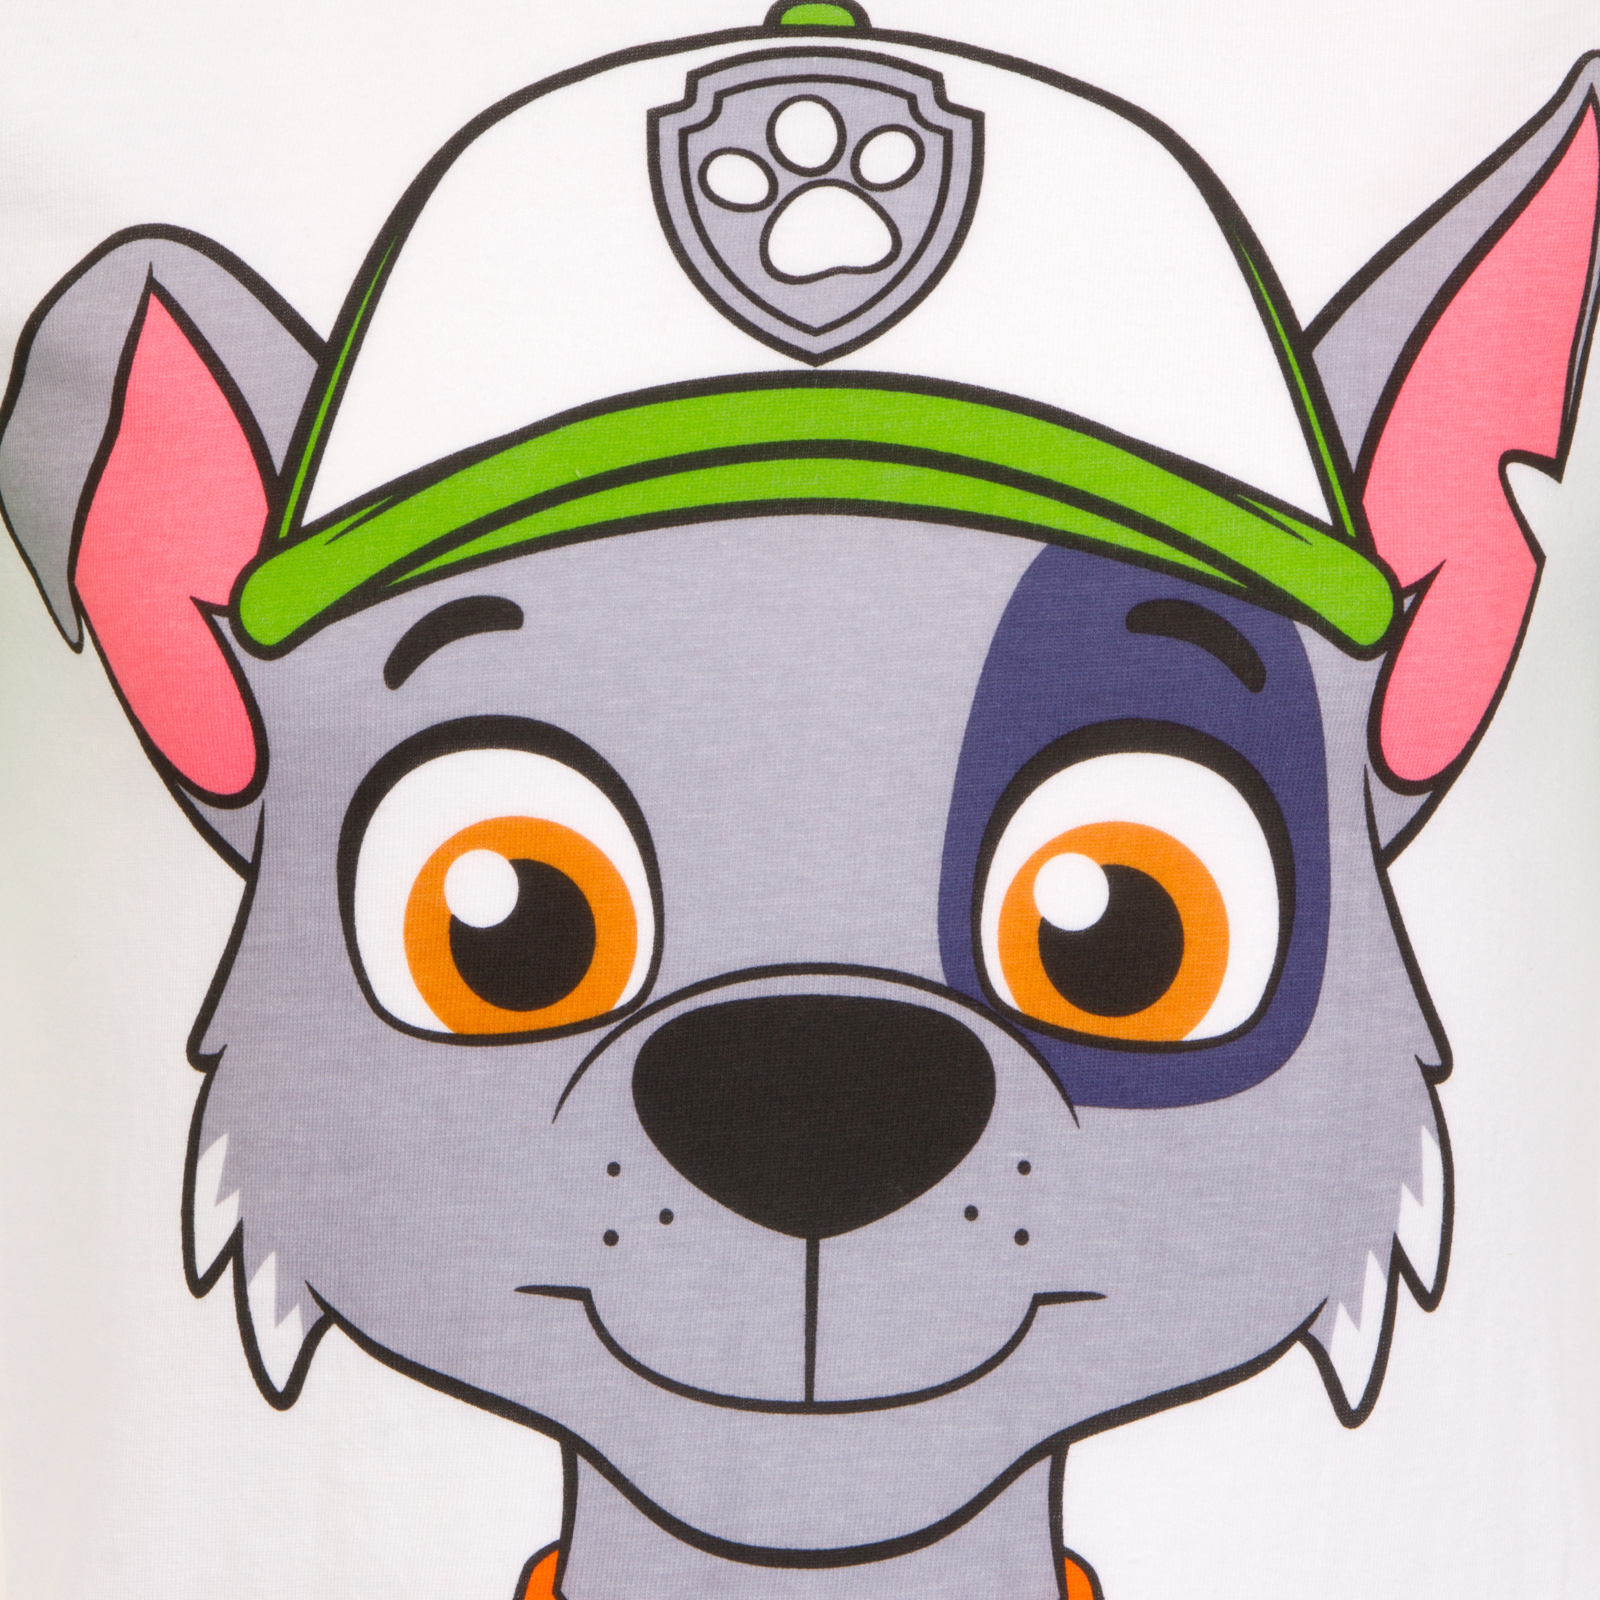 Details About Paw Patrol Official Gift Boys Kids Character T Shirt Rocky Chase Rubble Skye